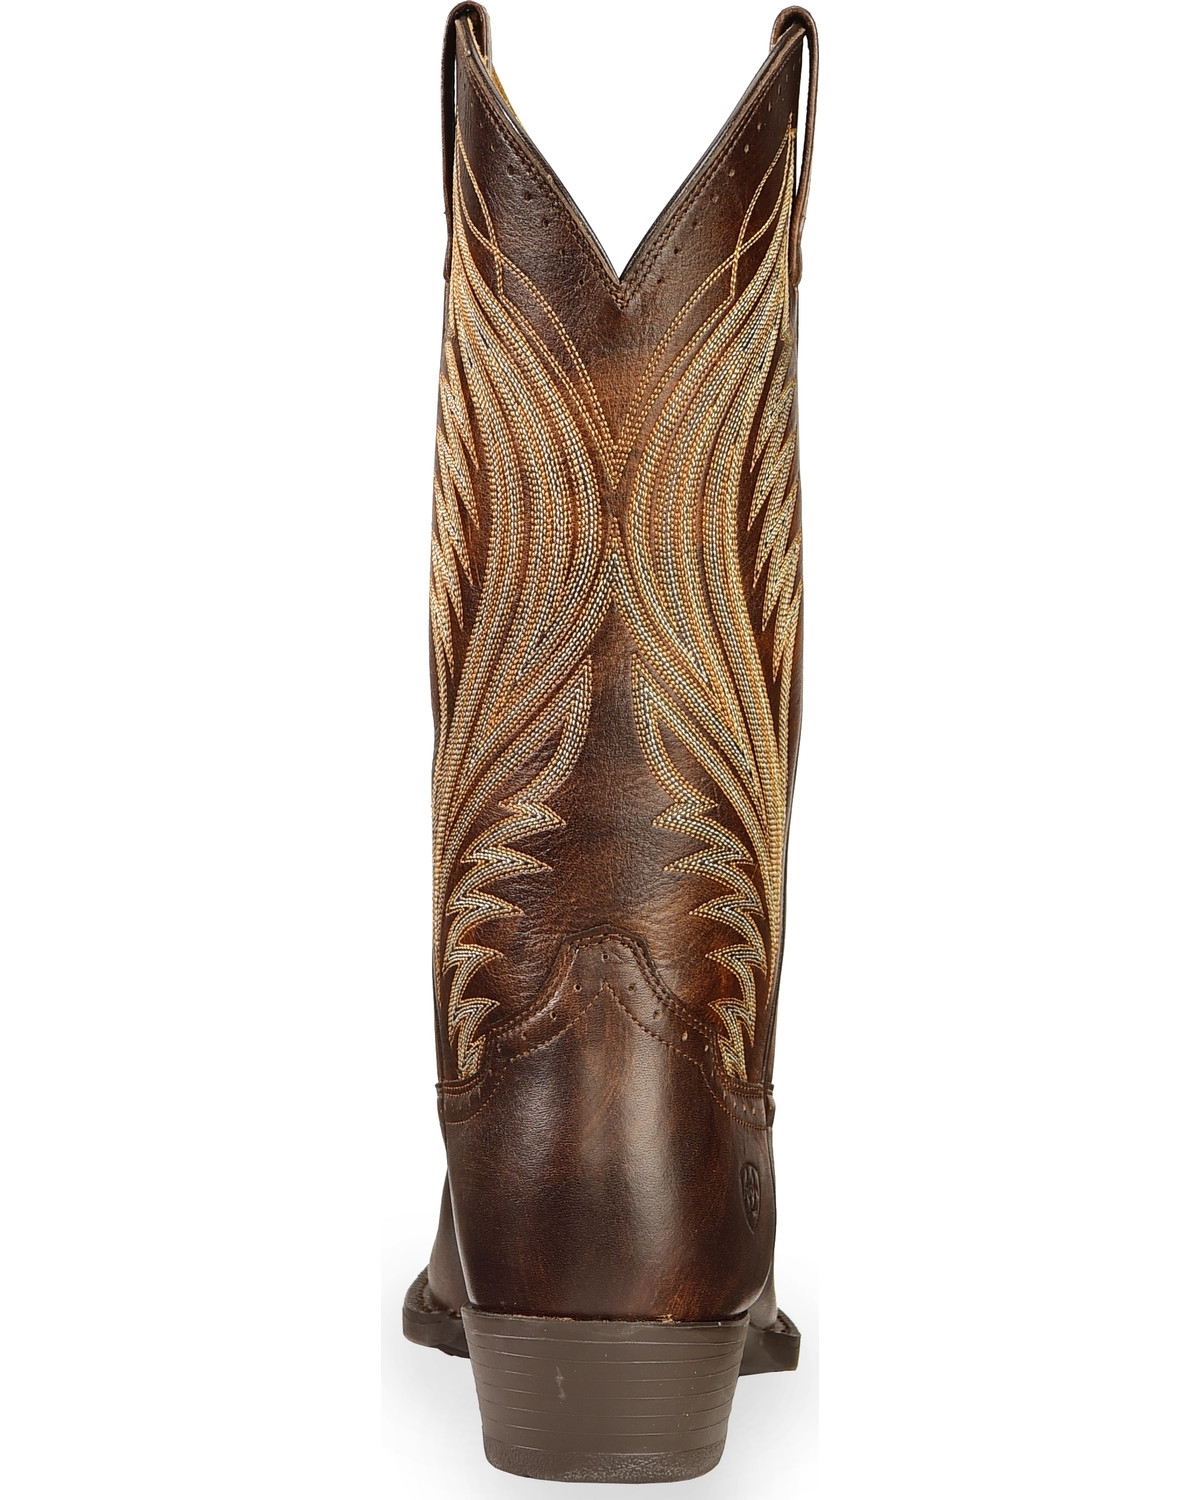 Ariat Boomtown Cowboy Boots - Medium Toe | Sheplers